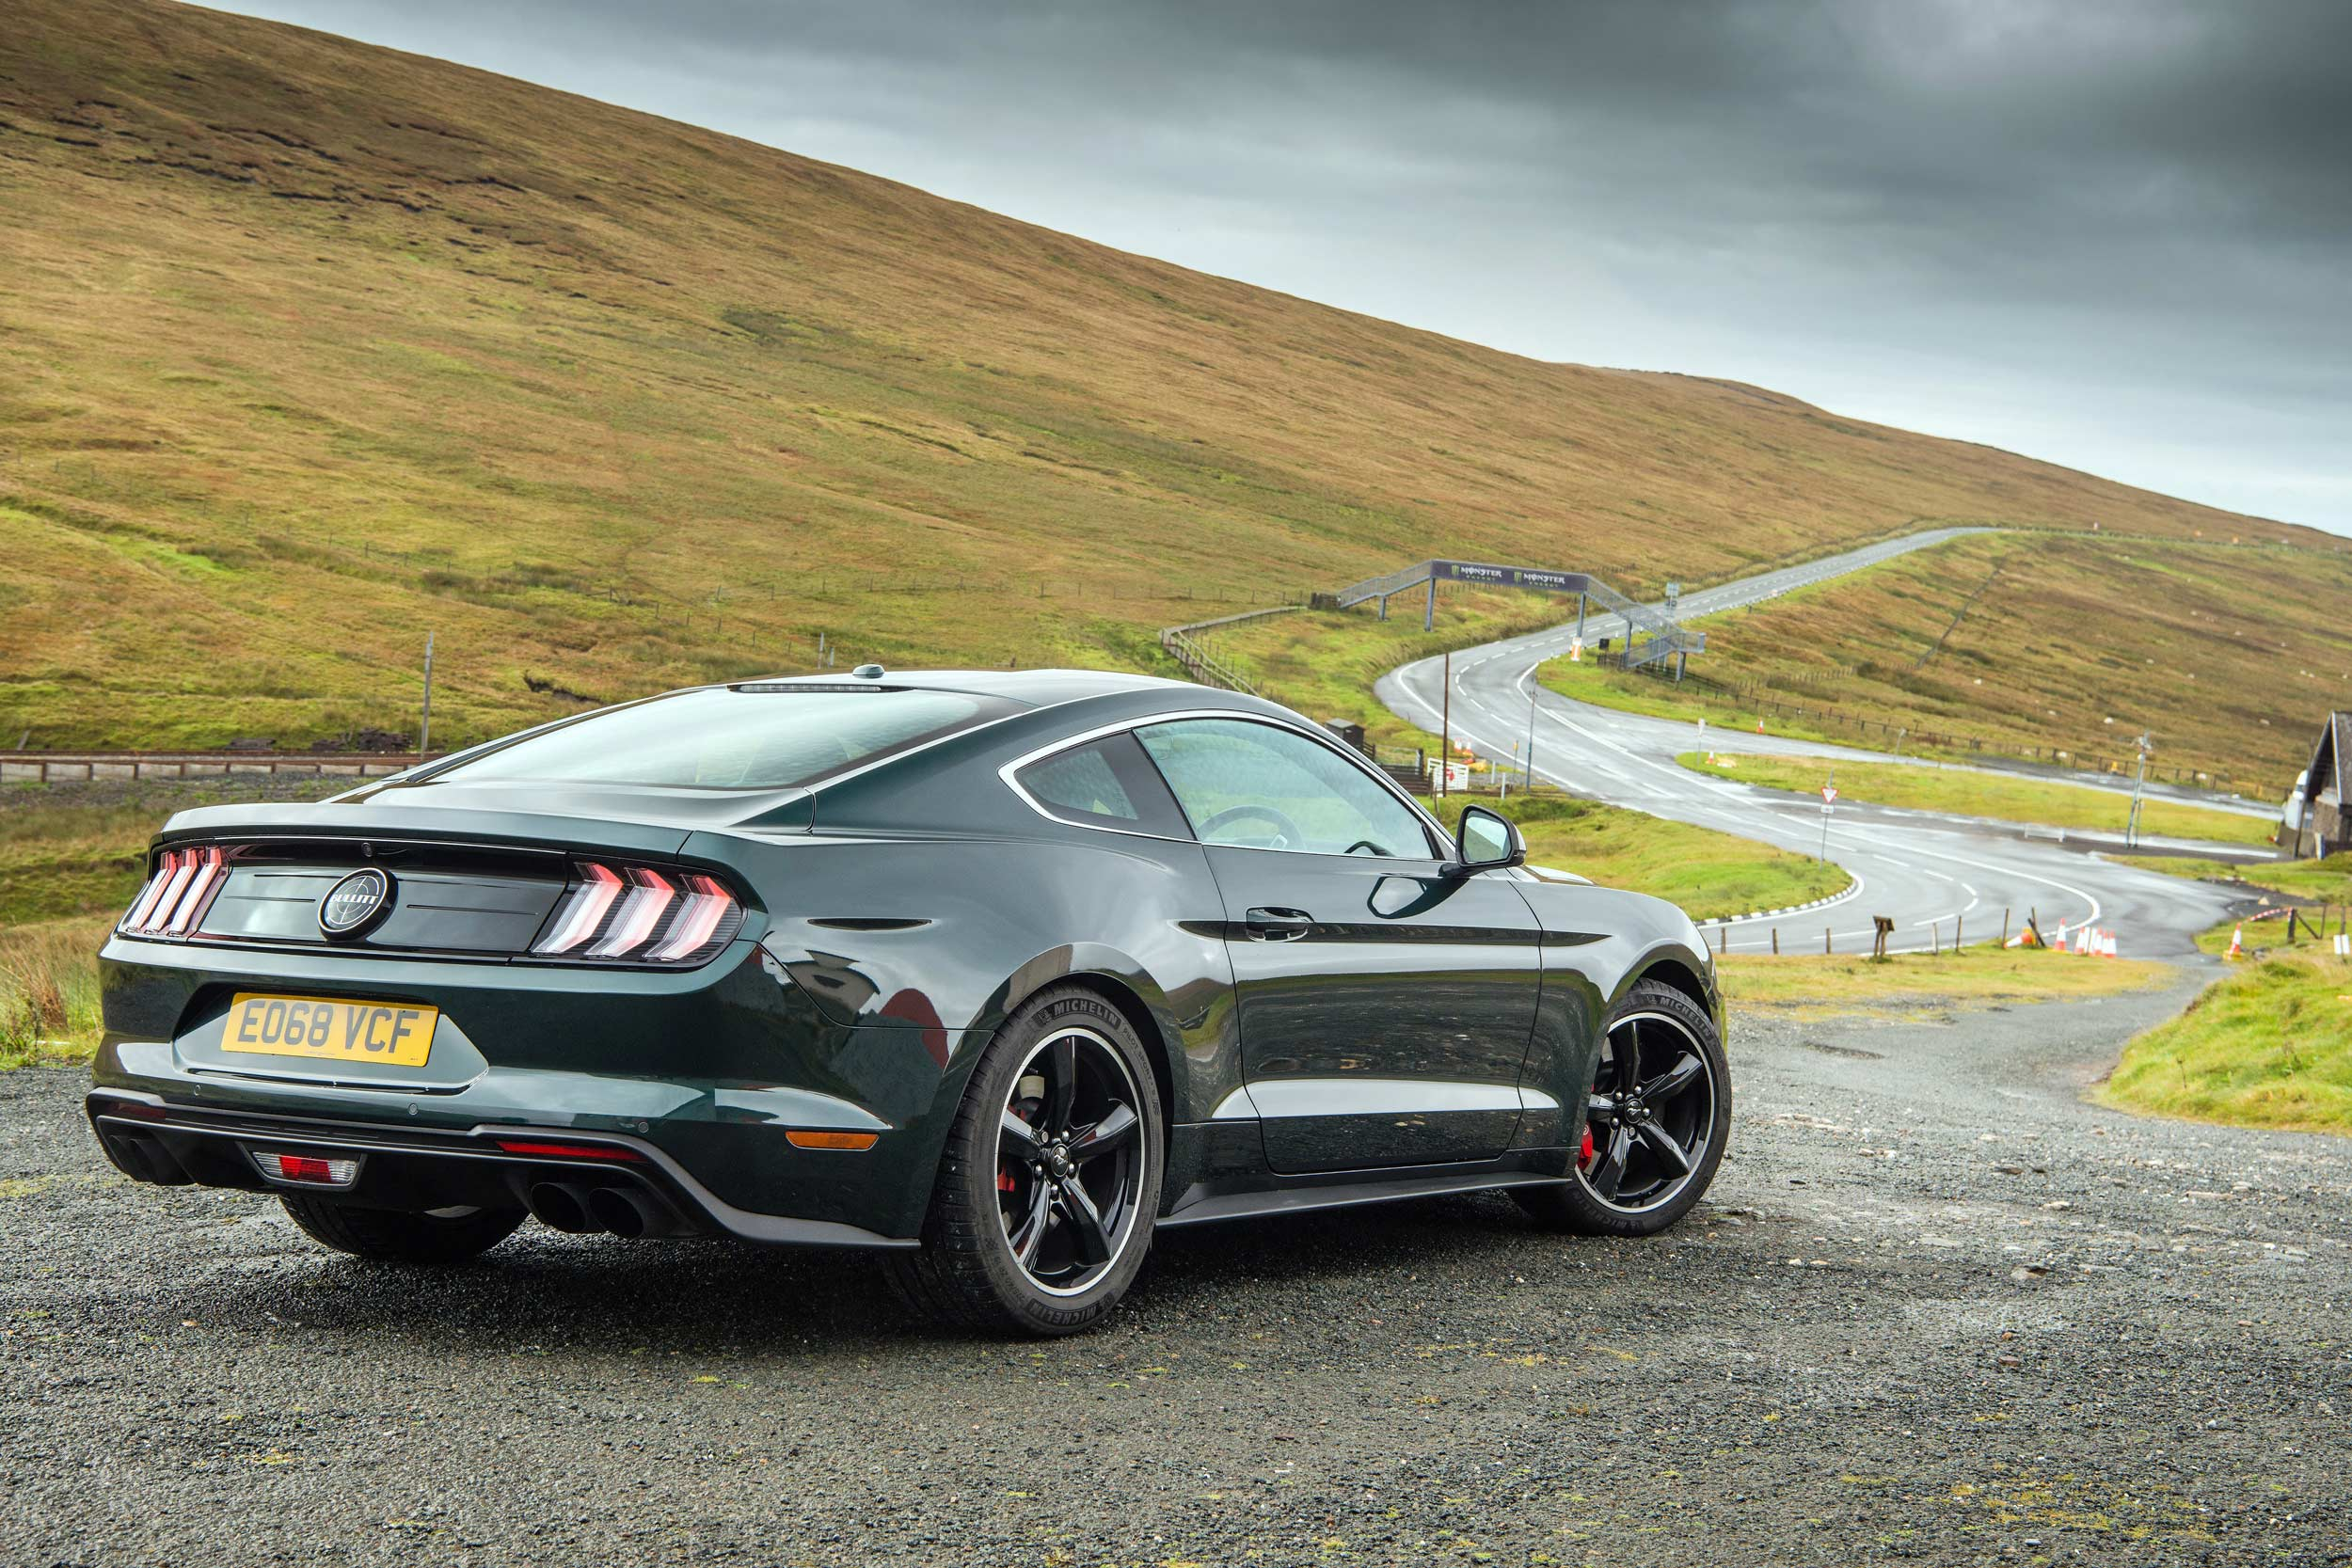 Ford Mustang Bullitt on the Isle of Man TT course